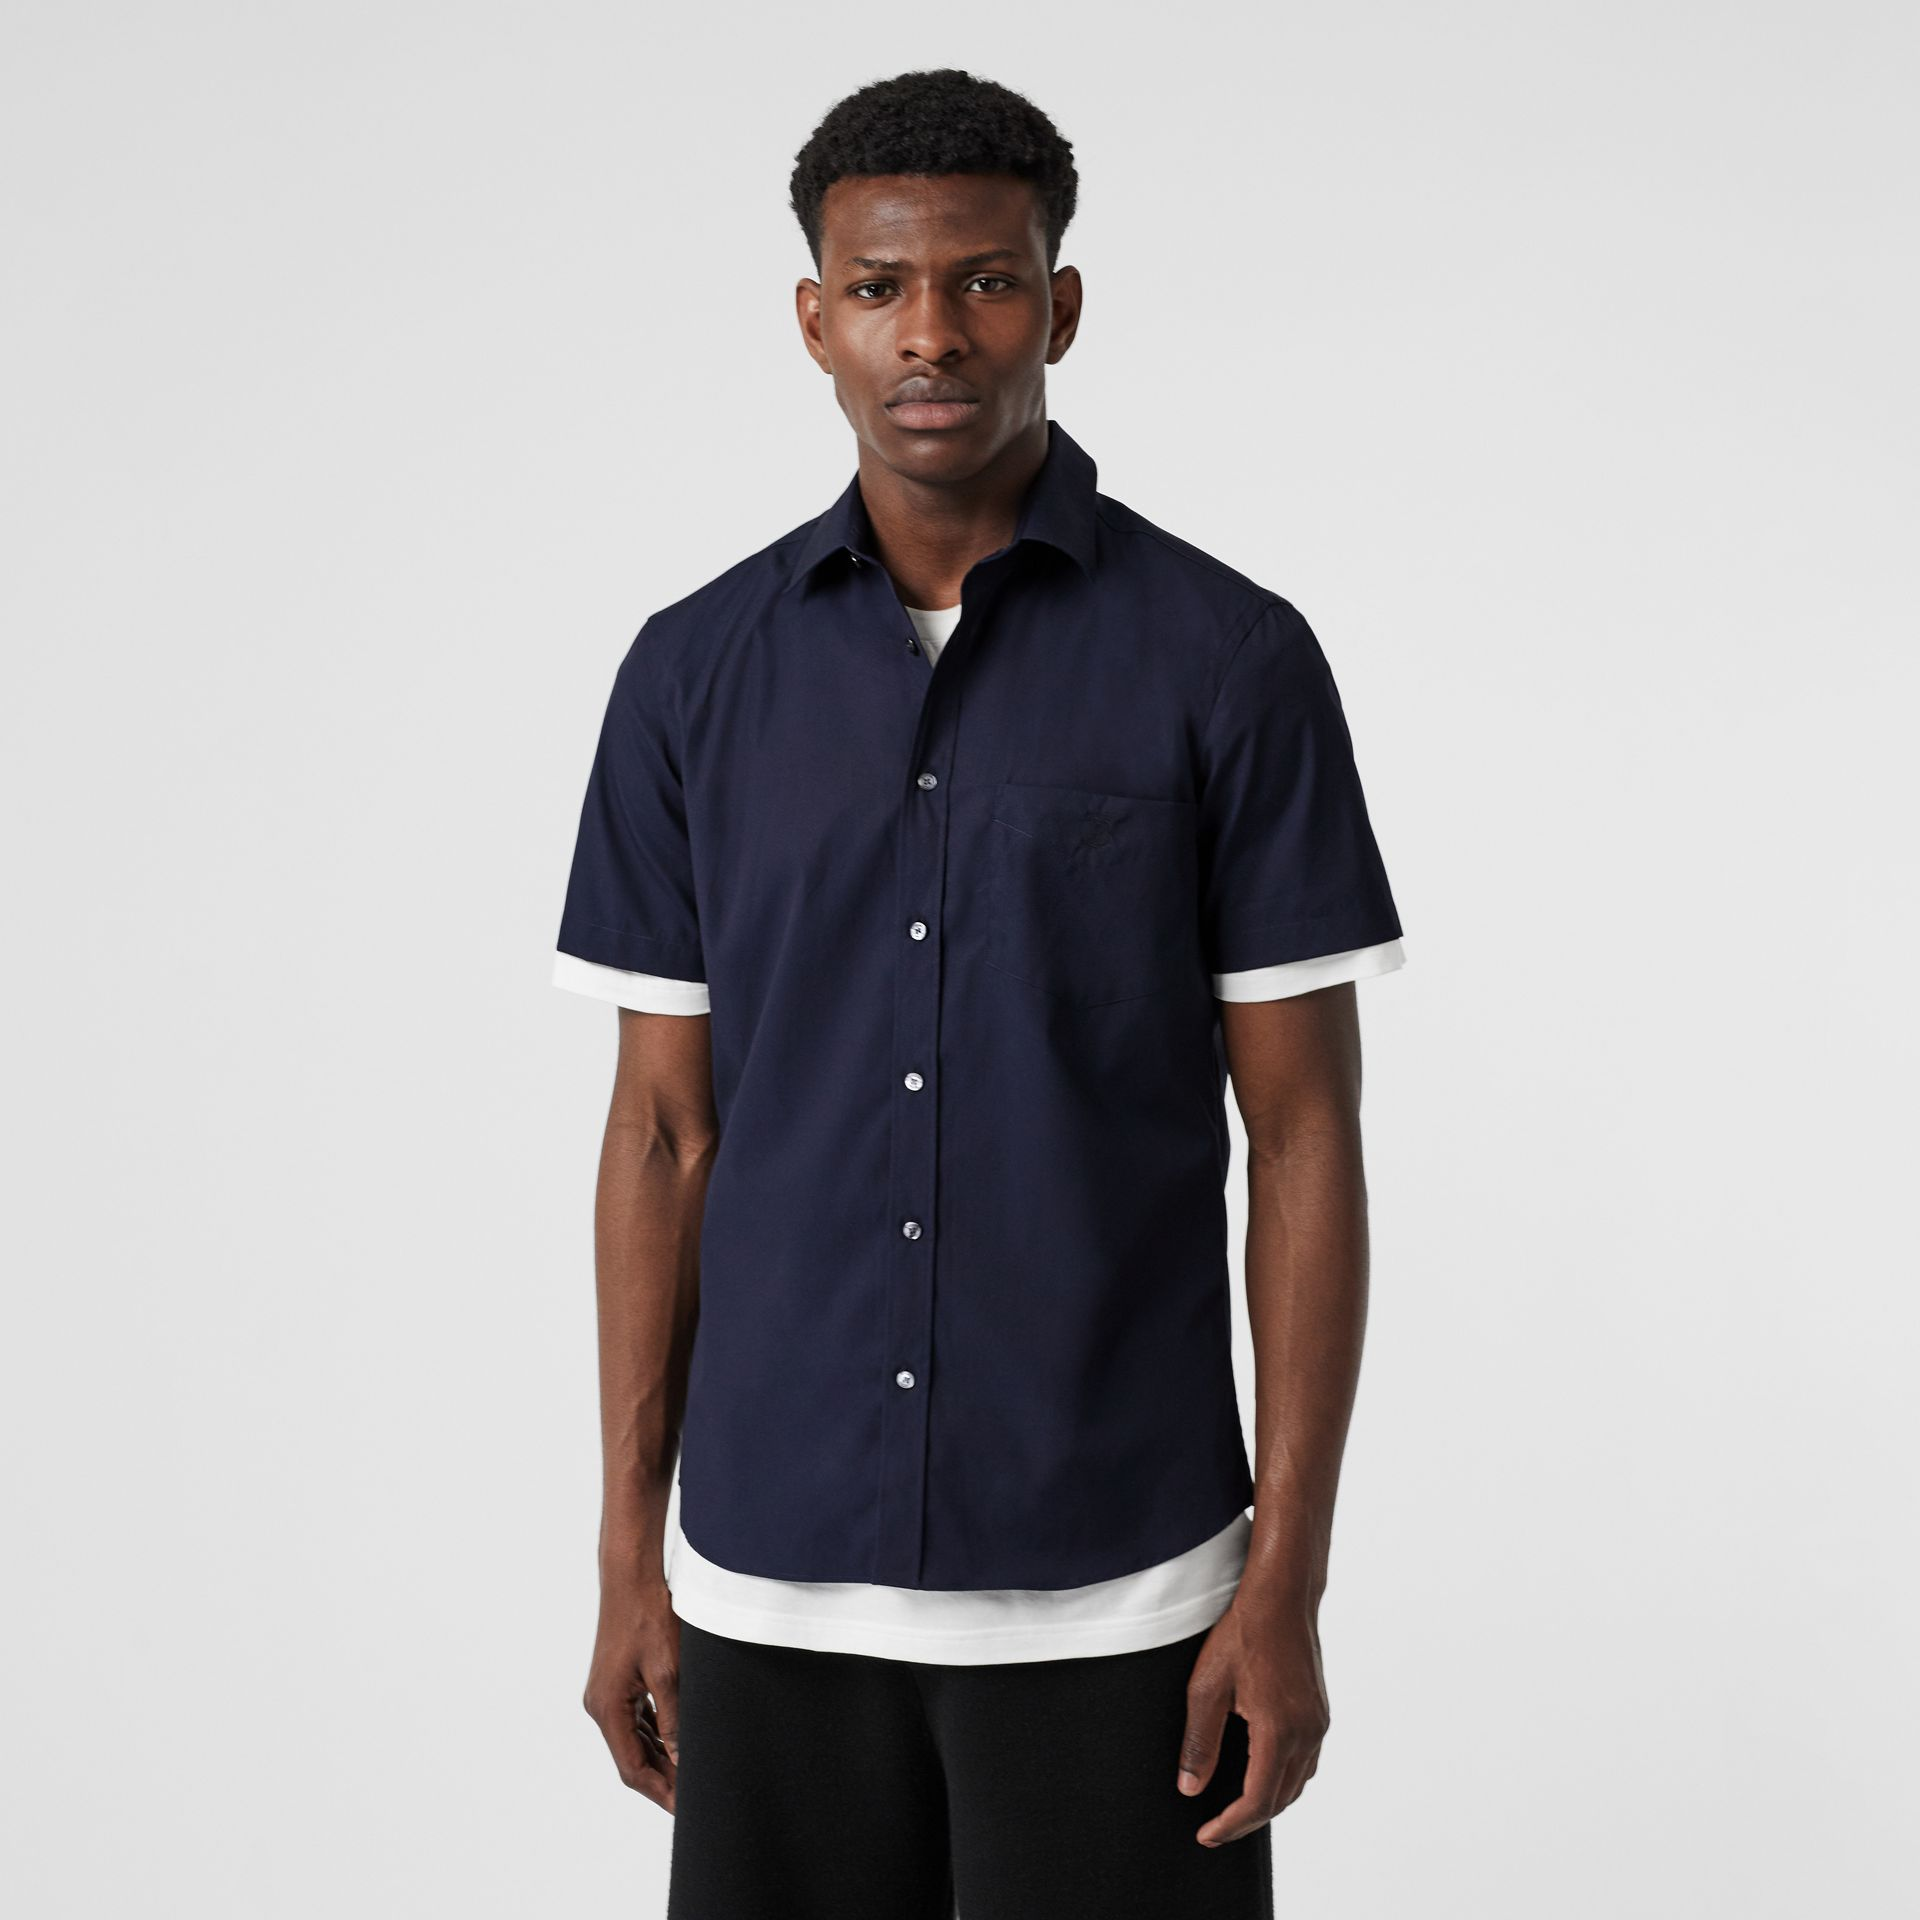 Short-sleeve Monogram Motif Stretch Cotton Shirt in Navy - Men | Burberry - gallery image 4